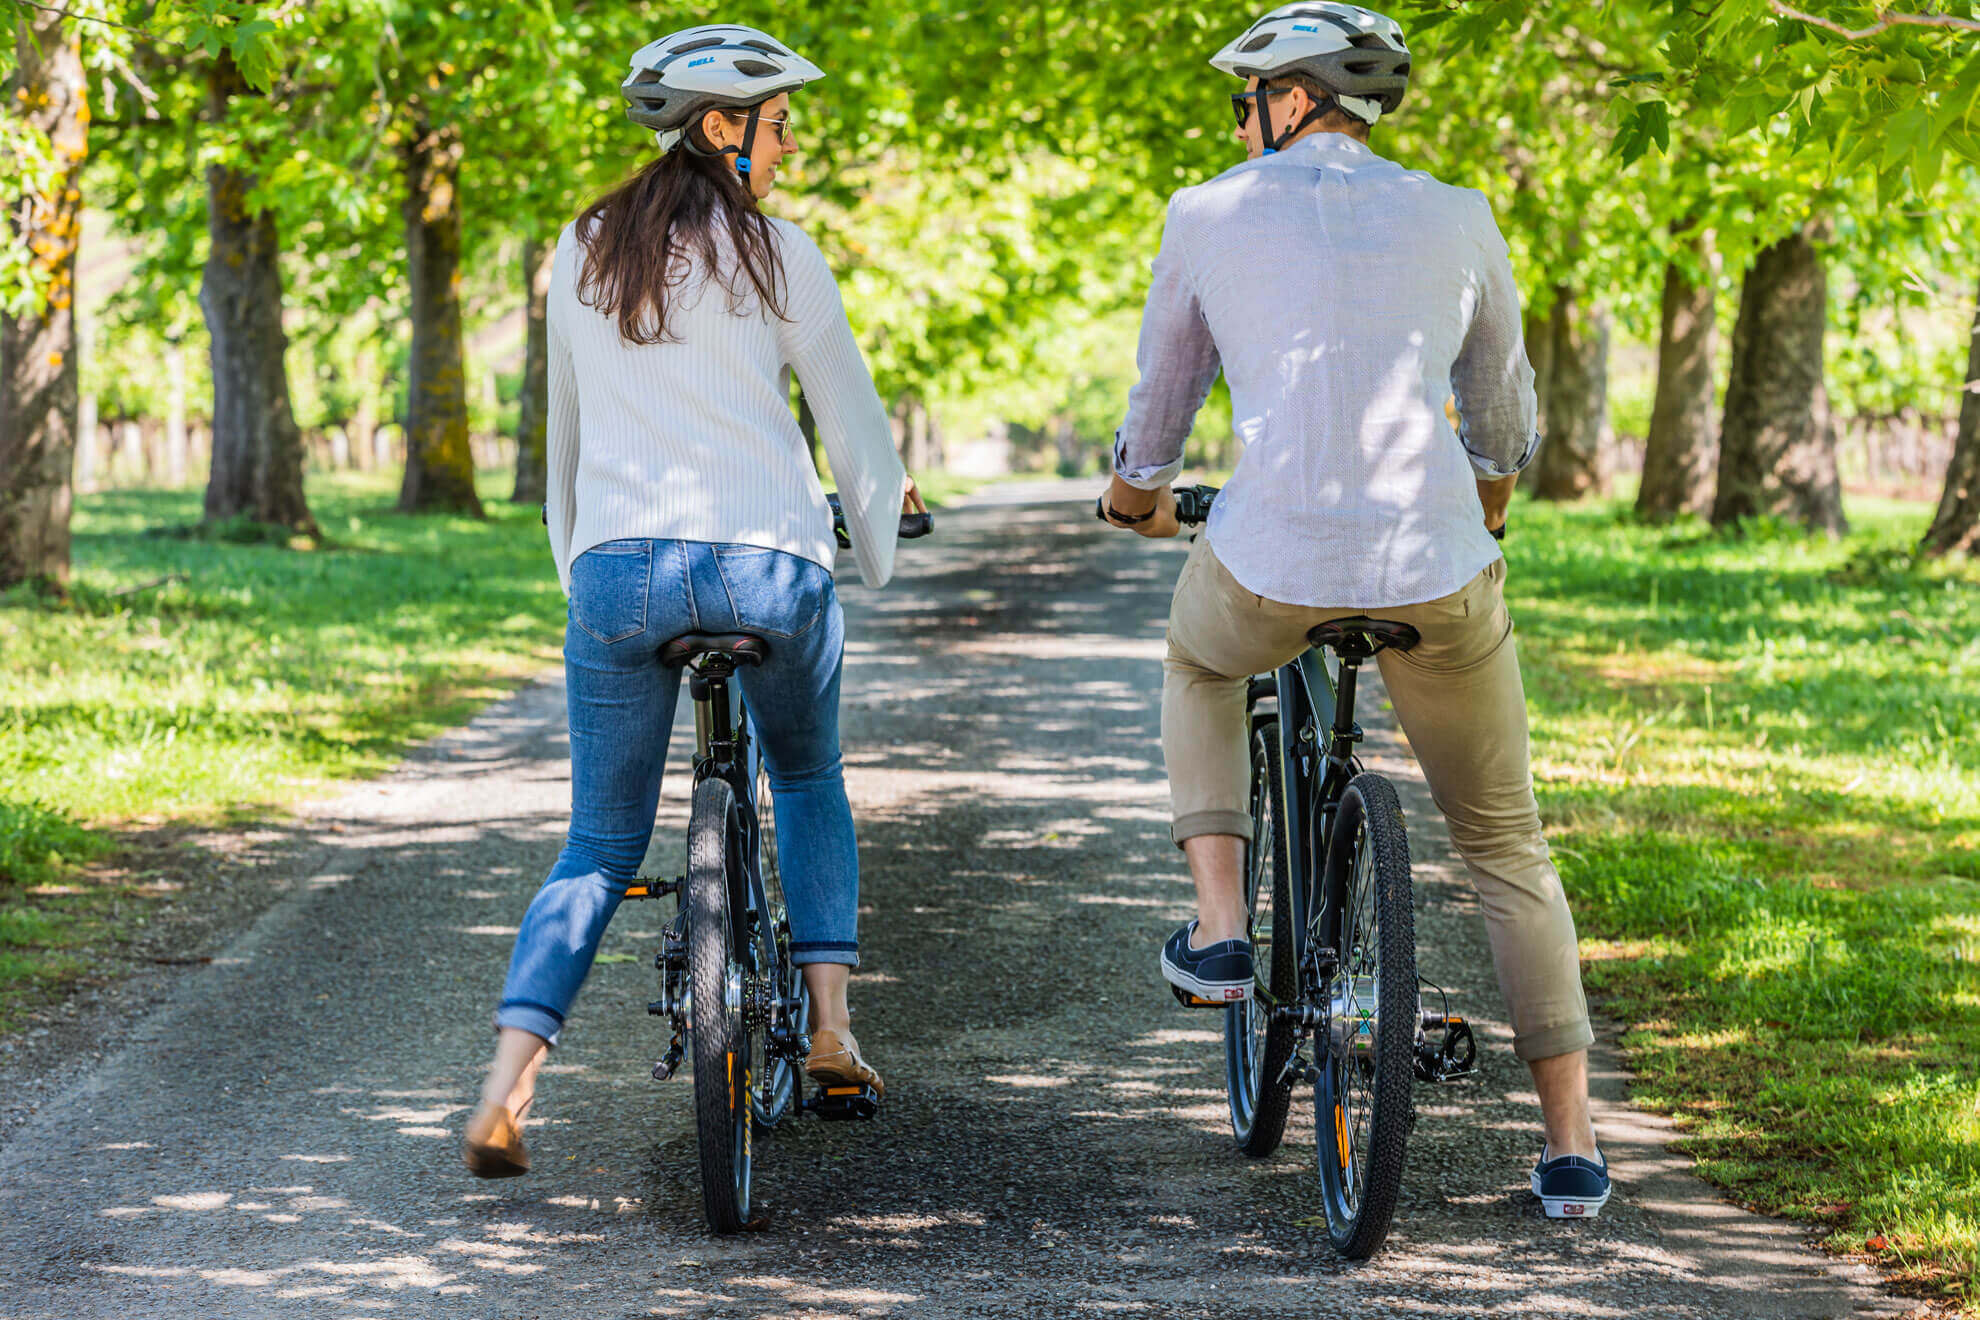 Self-guided eBike Tour in McLaren Vale